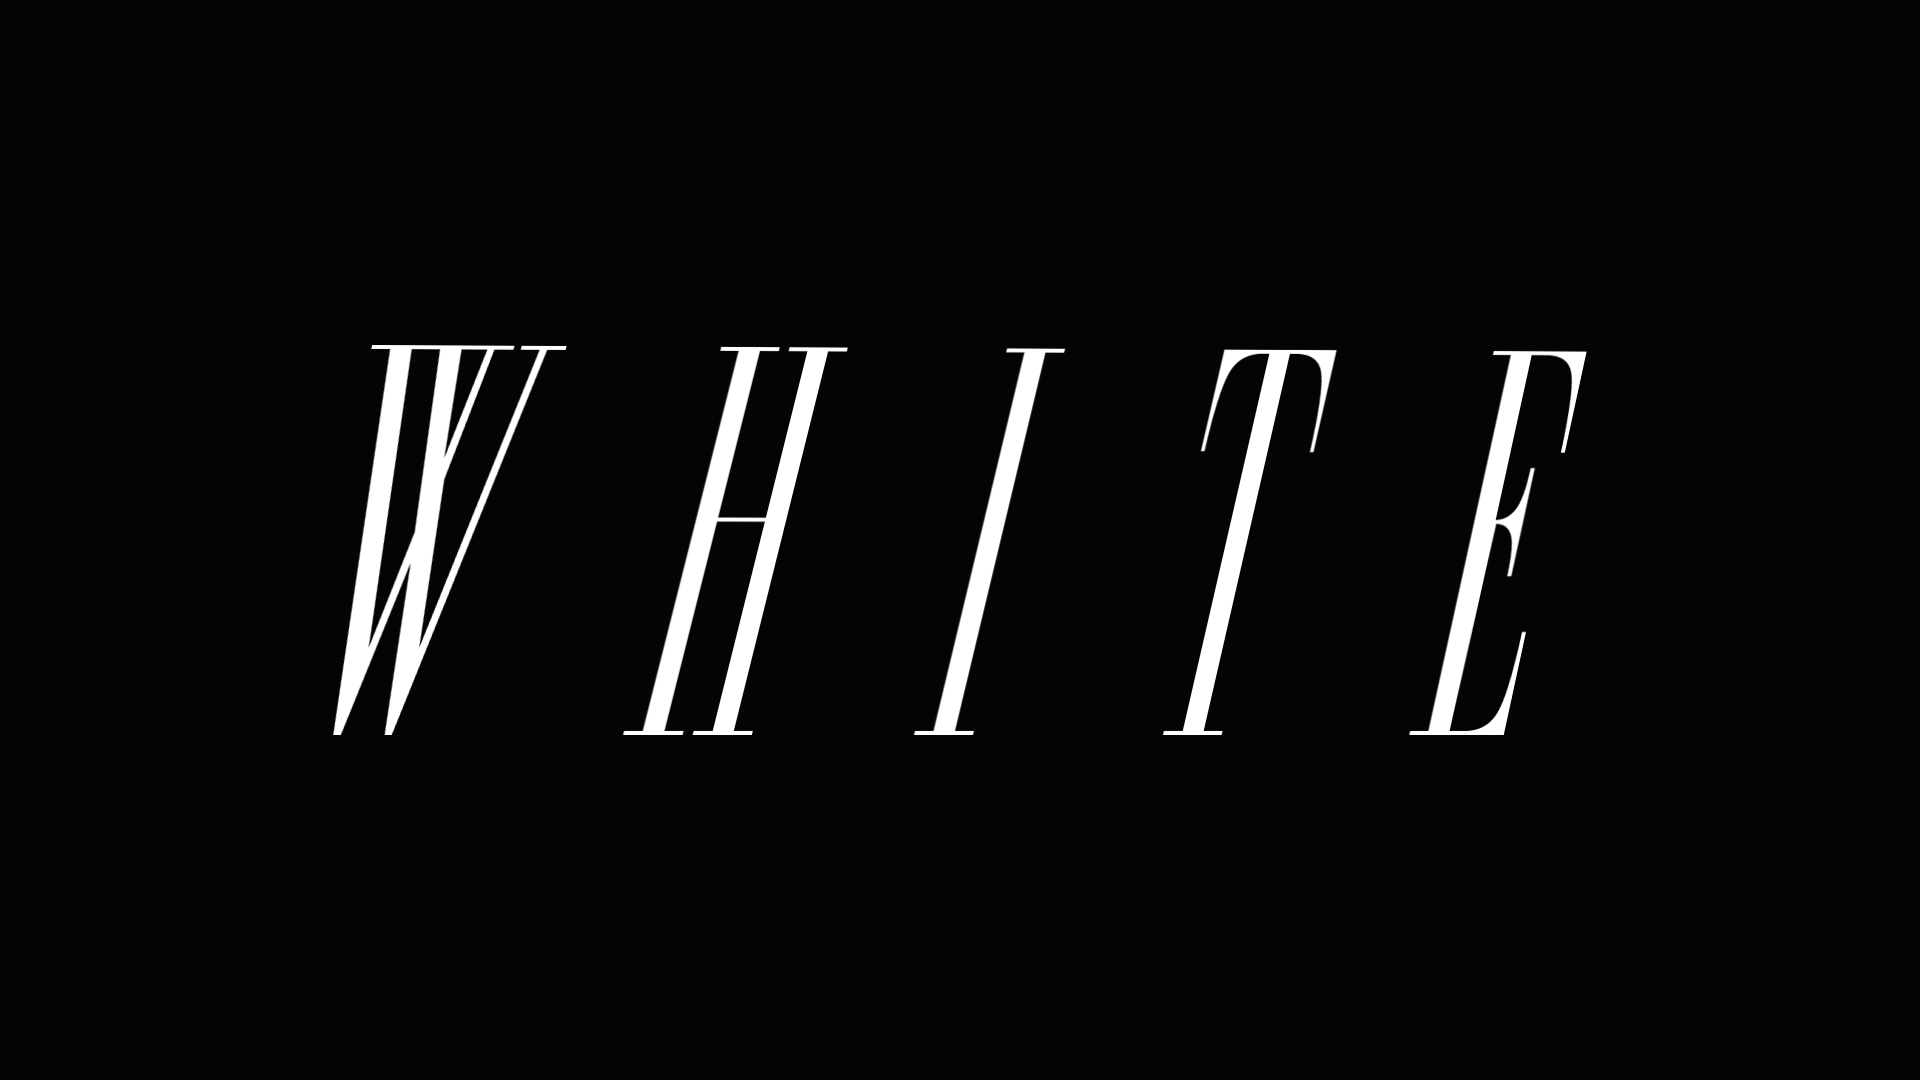 Off White 4K Wallpapers - Top Free Off White 4K ...